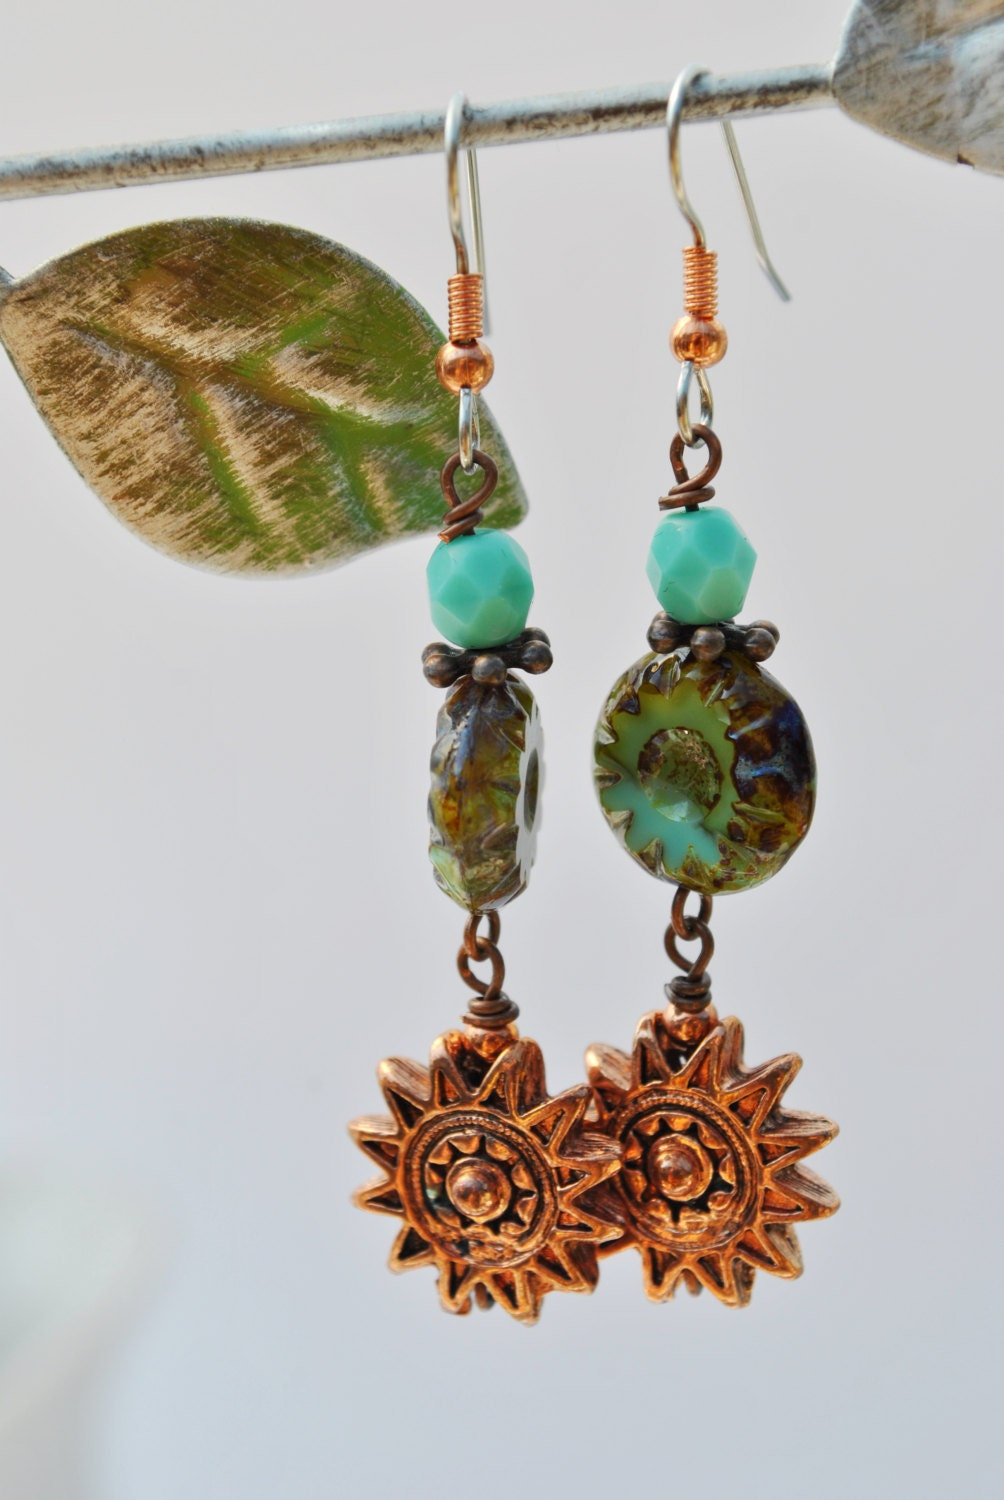 Turquoise blue Czech glass and copper sun face earrings - Beechtree